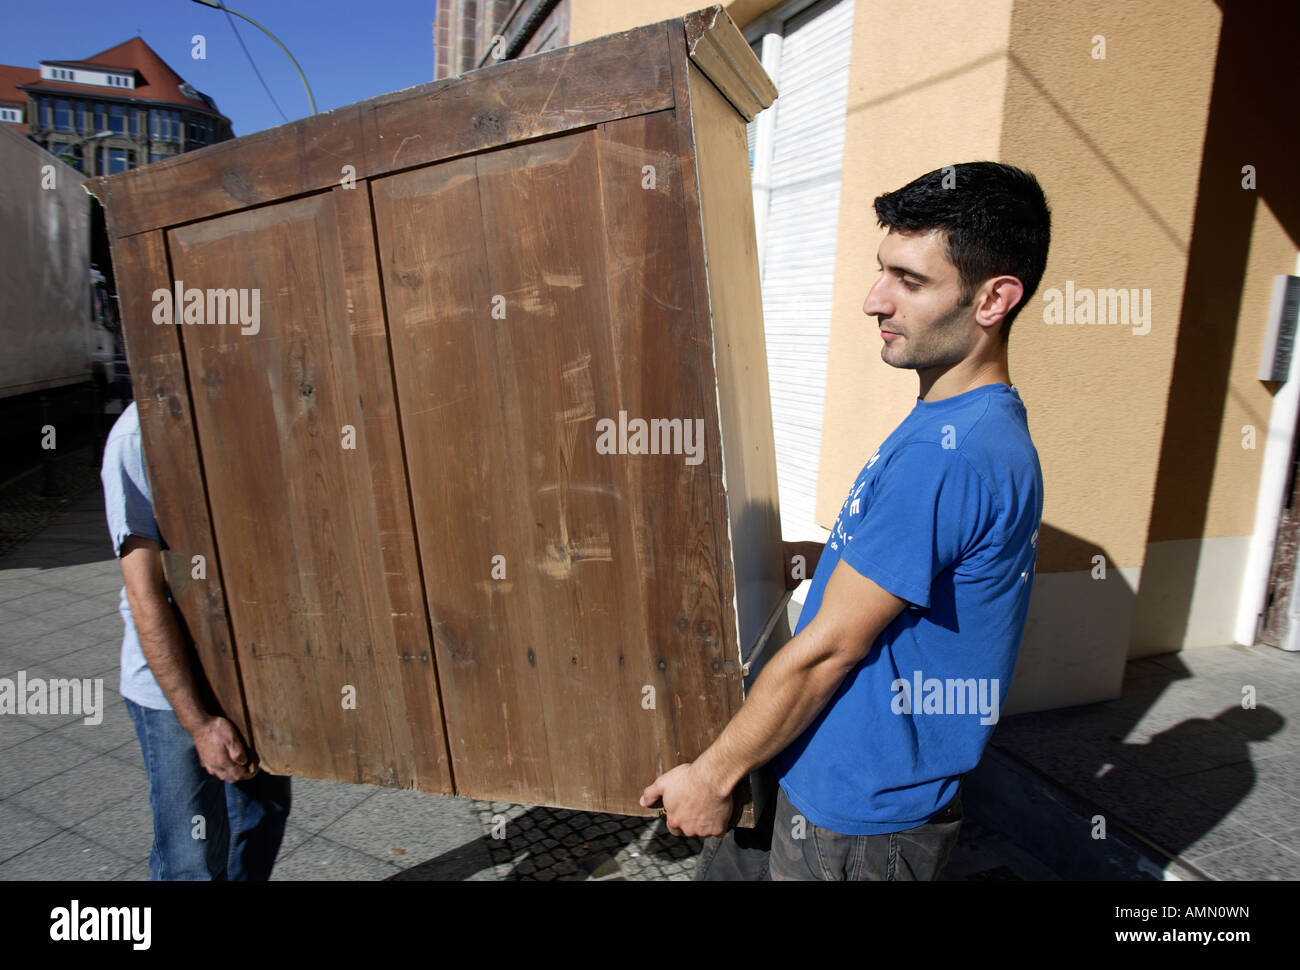 Removal men carrying furniture, Berlin, Germany Stock Photo